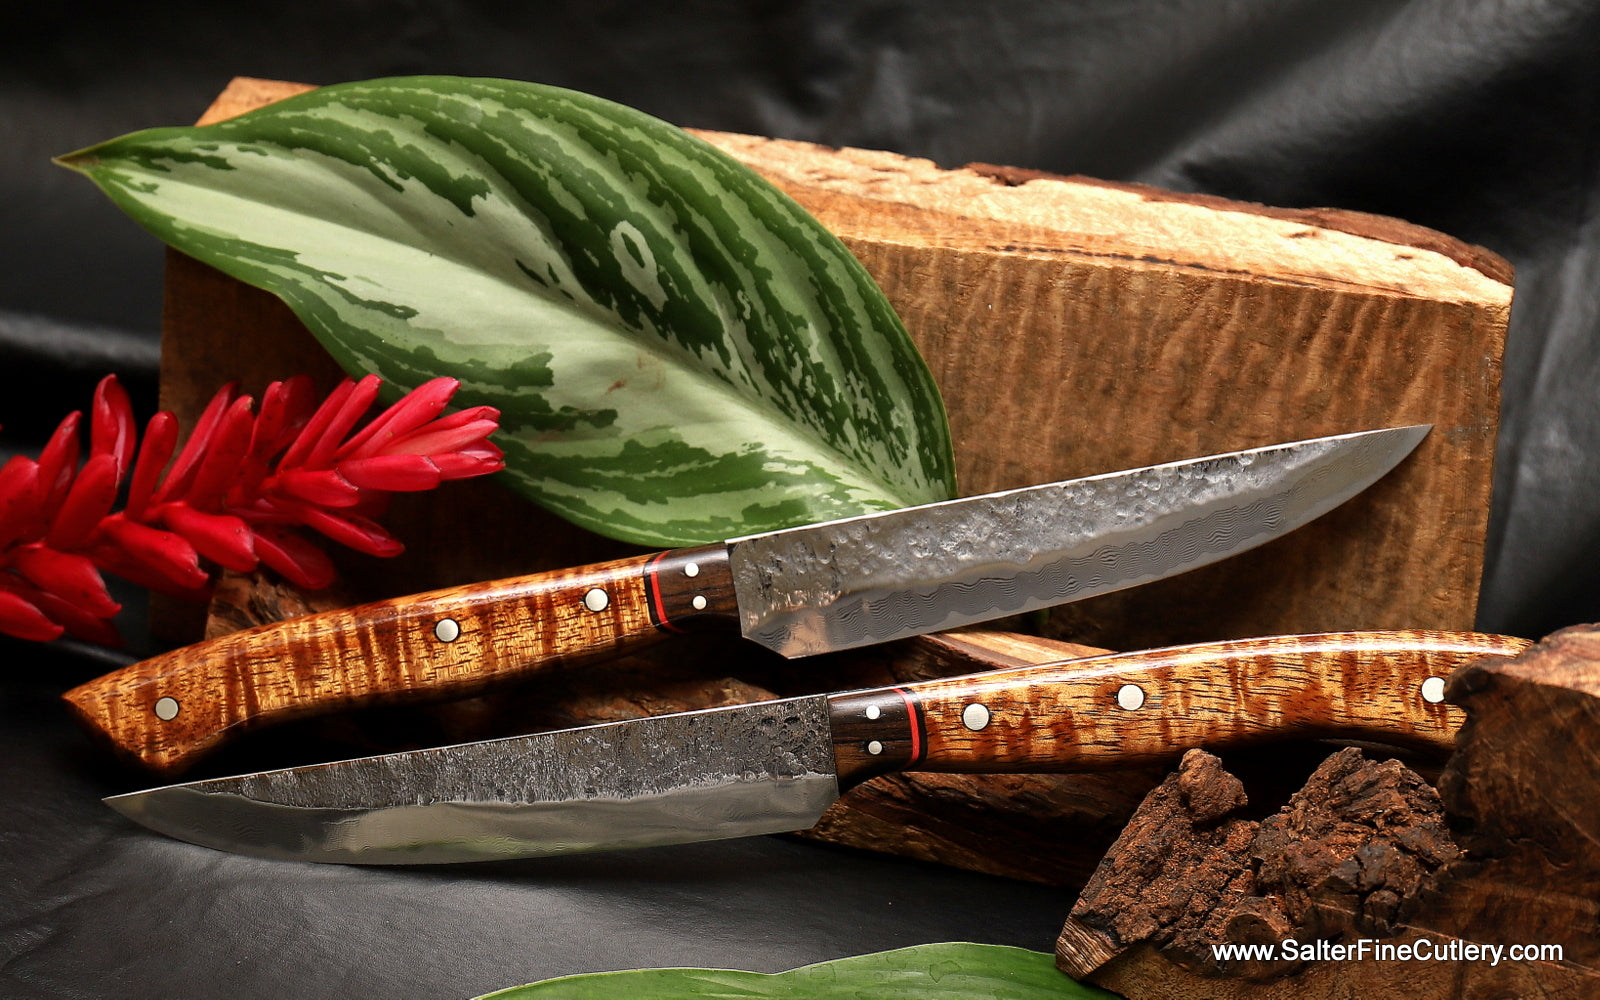 The Salter classic design steak knife with new Magma design finish custom made by and for Salter Fine Cutlery of Hawaii